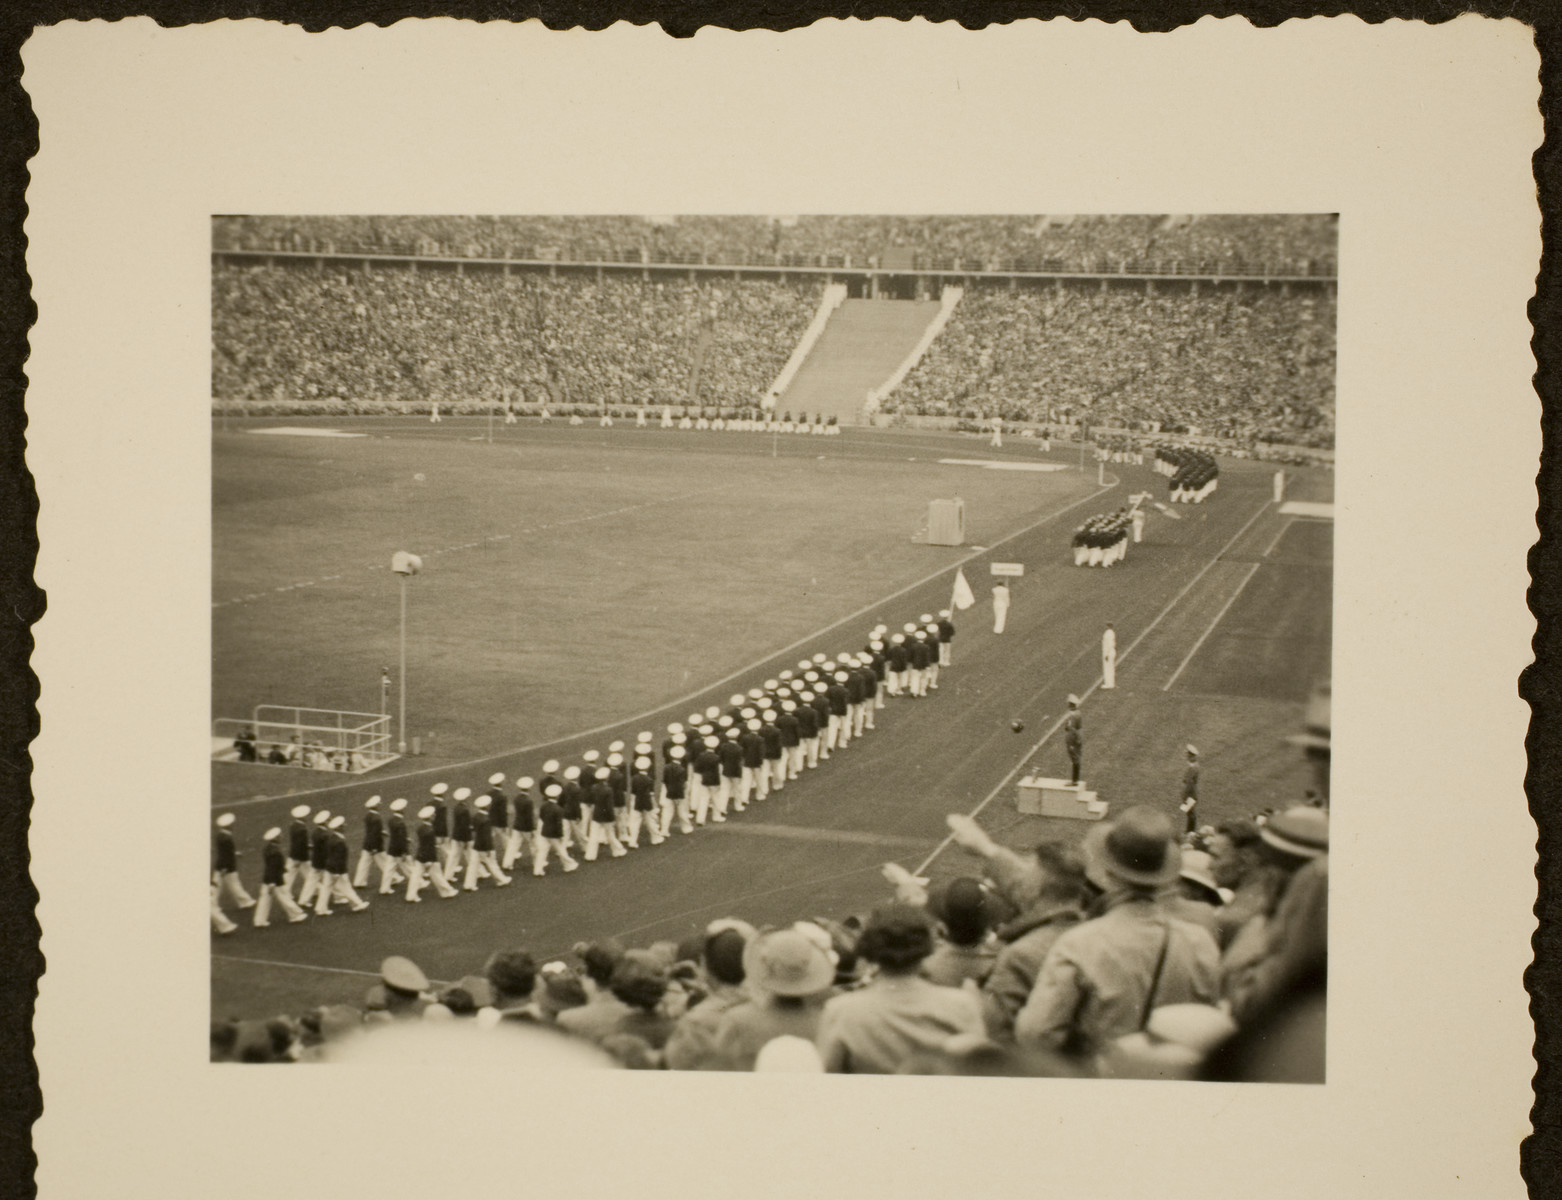 A view from the stands of the American Olympic team marching into the Olympic stadium for the 1936 games, wearing suits and hats.